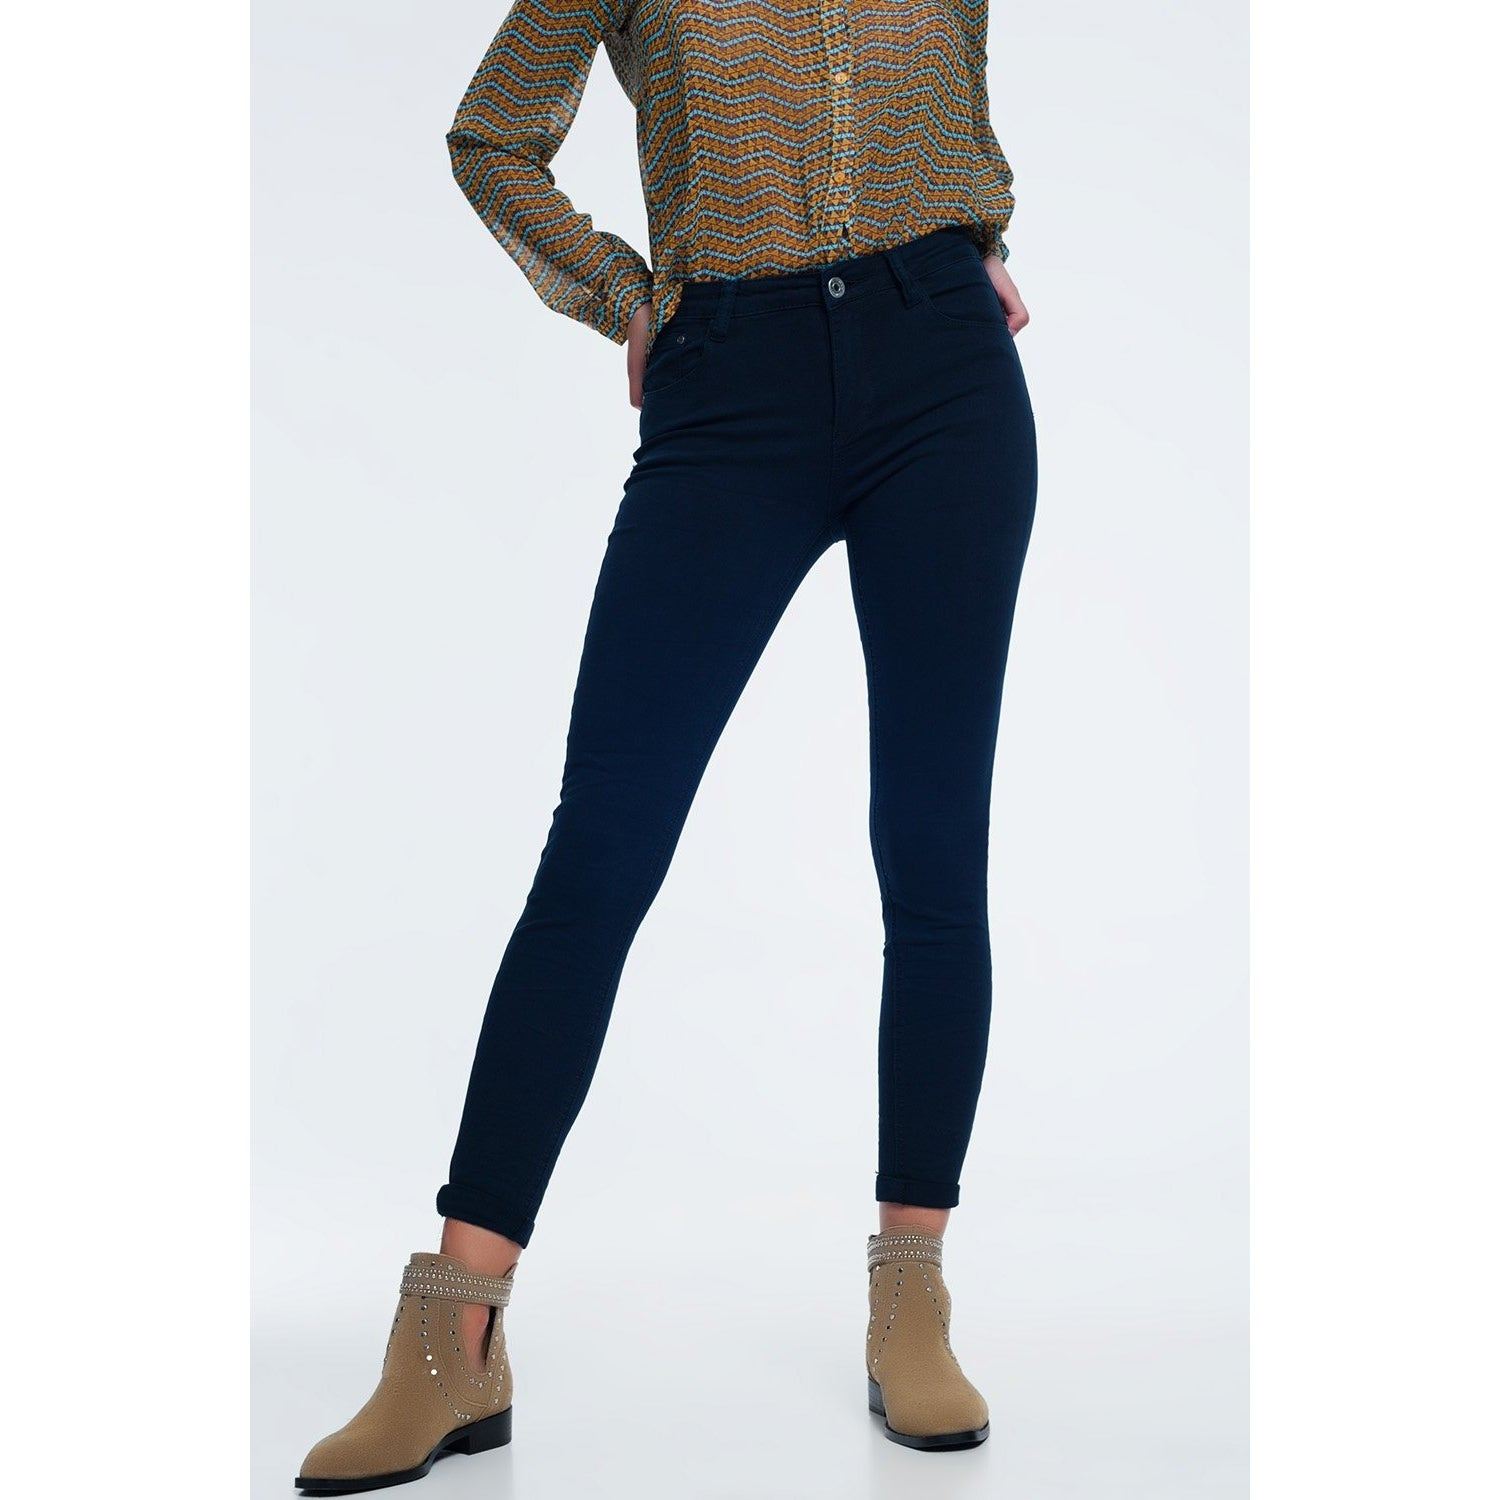 High Waist Skinny Jeans with Stretch in Navy - Miraposa